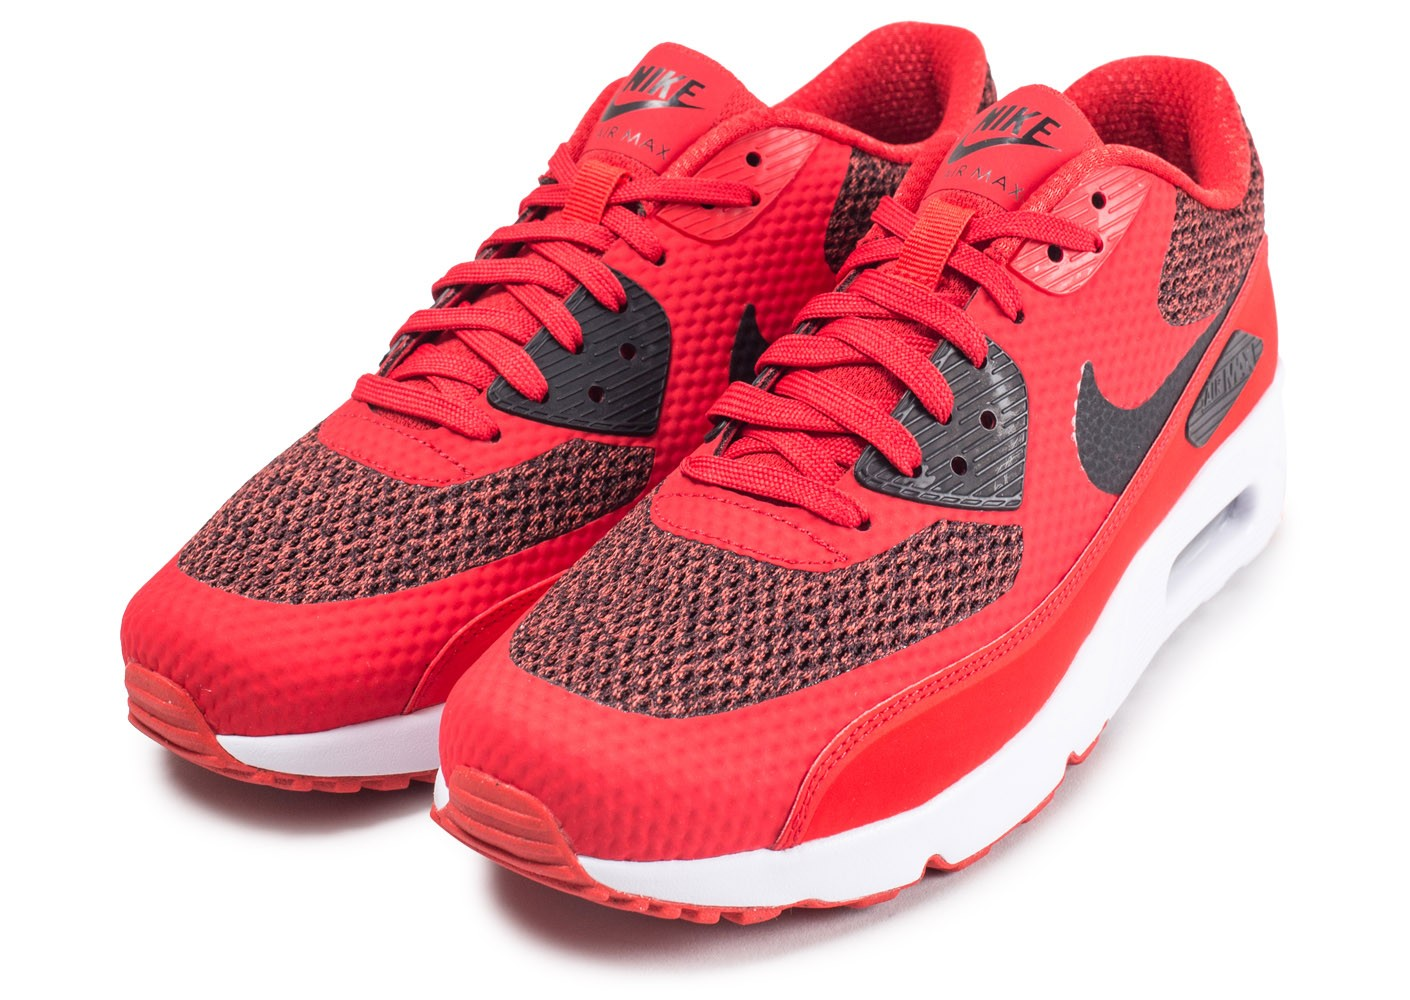 new styles 29f28 58c38 ... Chaussures Nike Air Max 90 Ultra 2.0 Essential rouge vue intérieure ...